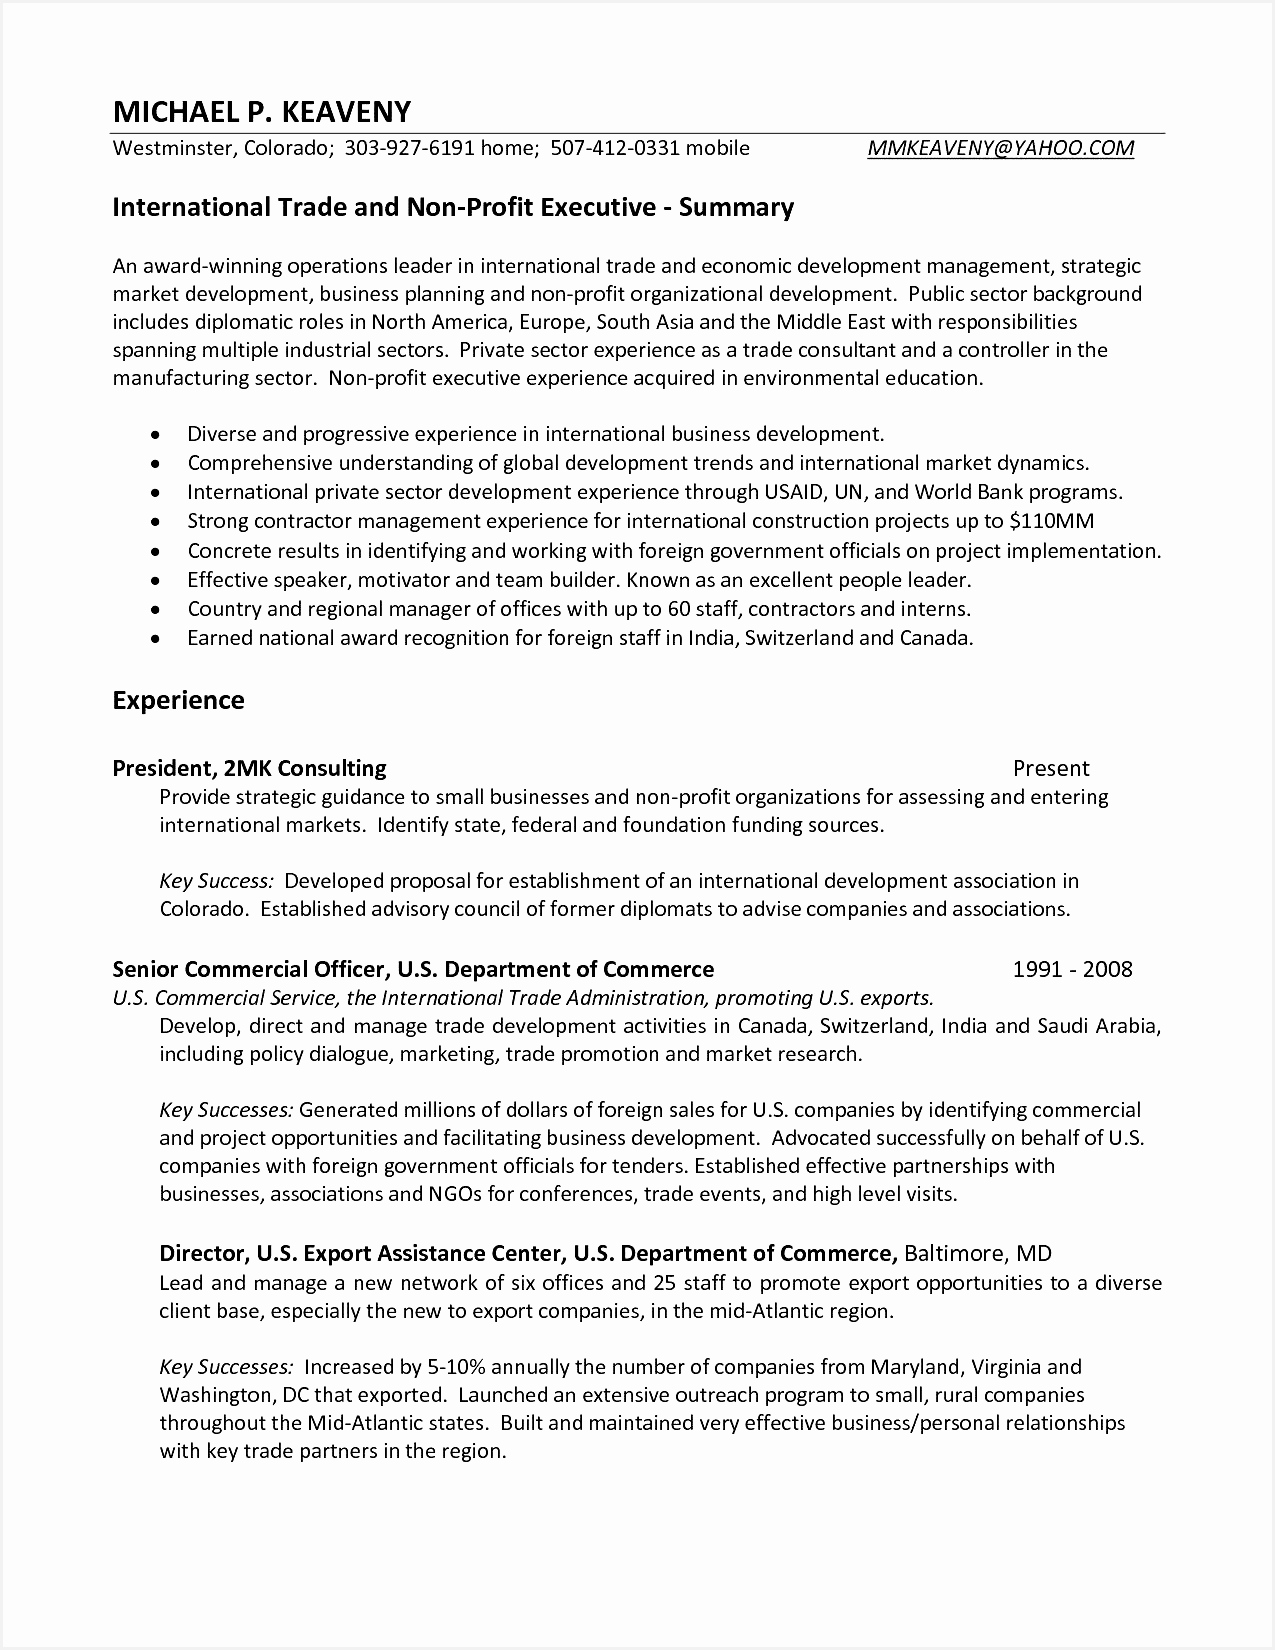 Propsal Template Unique American Resume Sample New Student Resume 0d Wallpapers 42 Awesome16501275